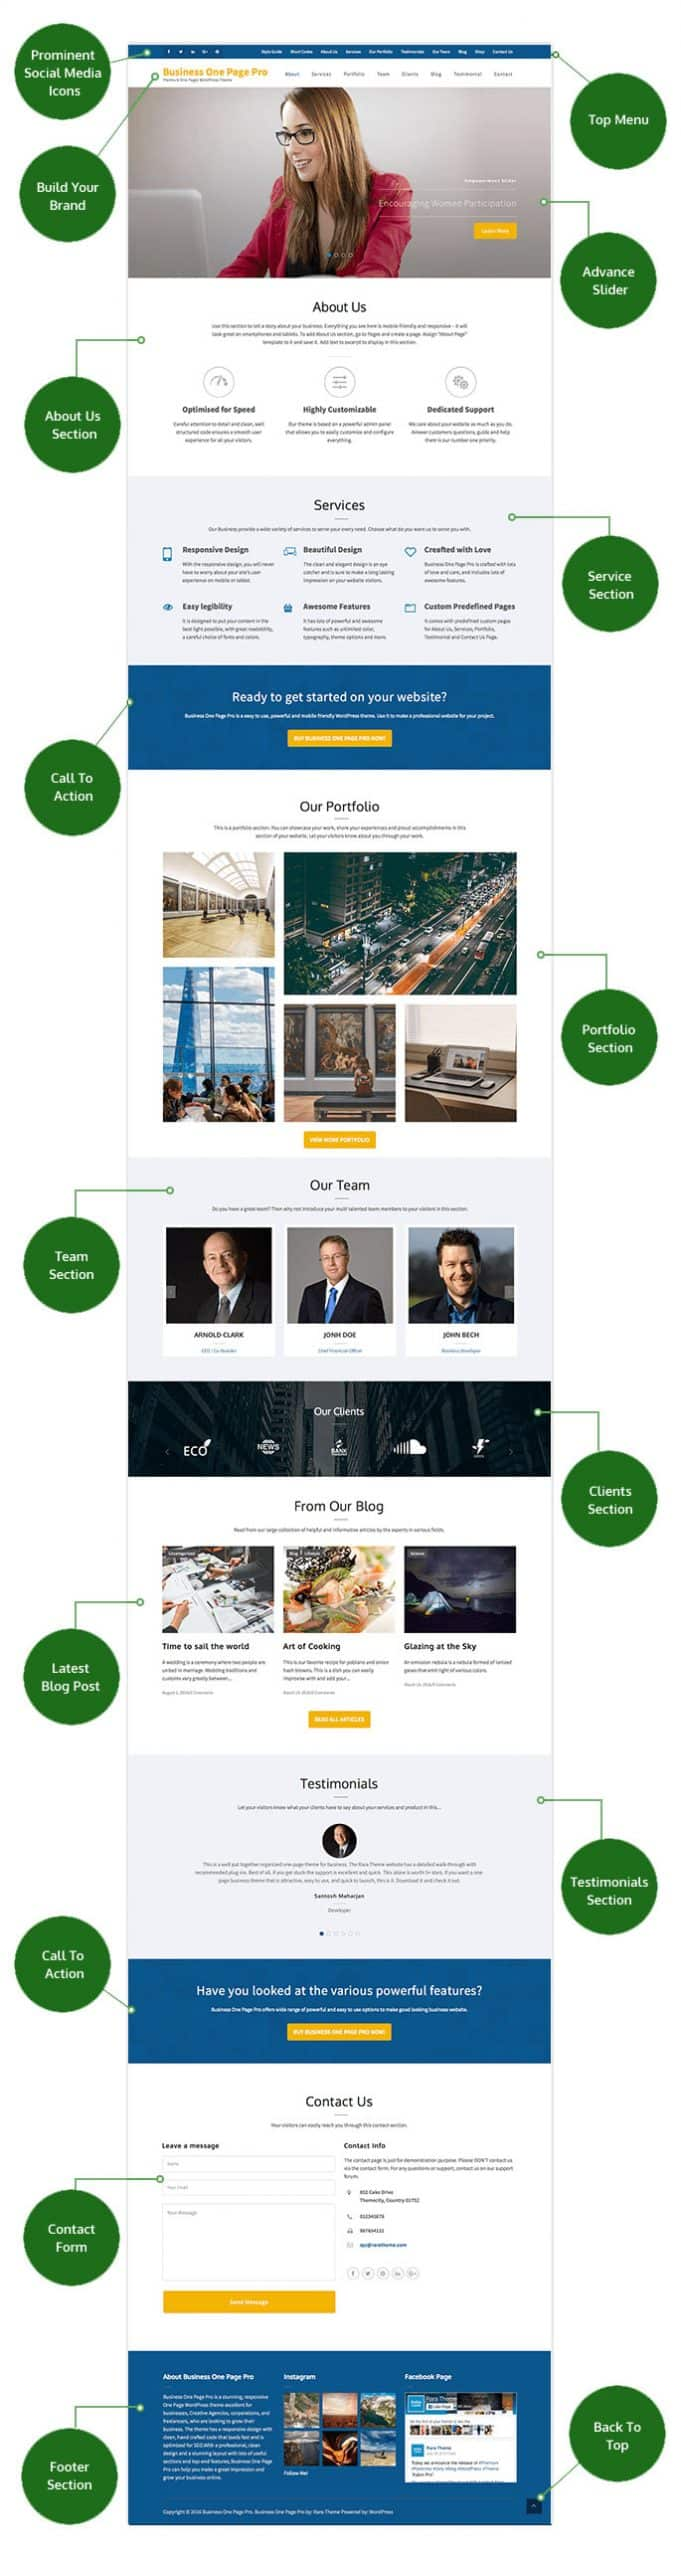 RaraThemes - Business One Page Pro WordPress Theme - Check out the different page layouts / sections